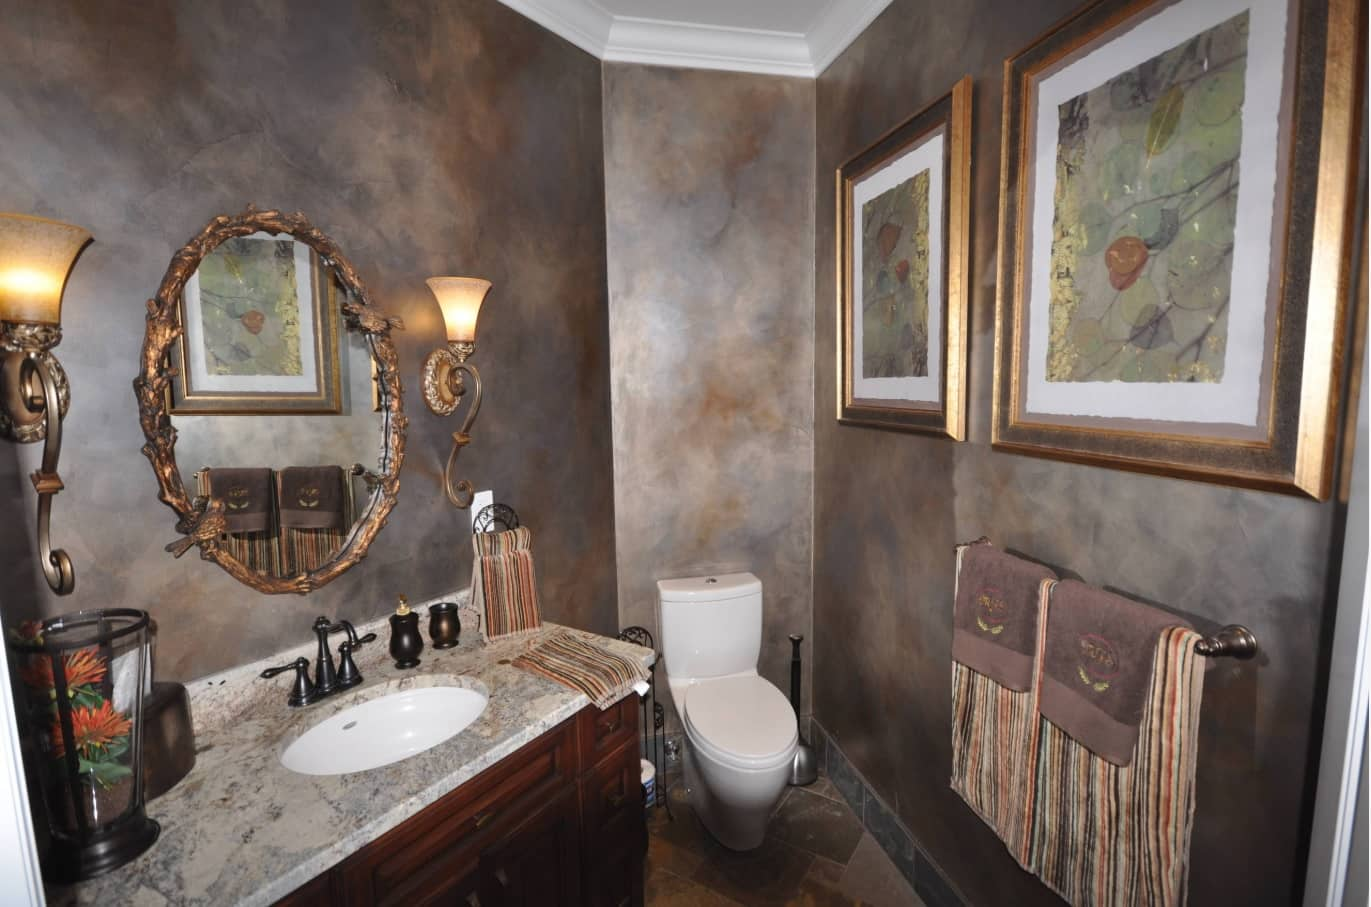 Faux Concrete Wall Paint: Modern and Original Finishing. Effective rusty metal imitation for the bathroom